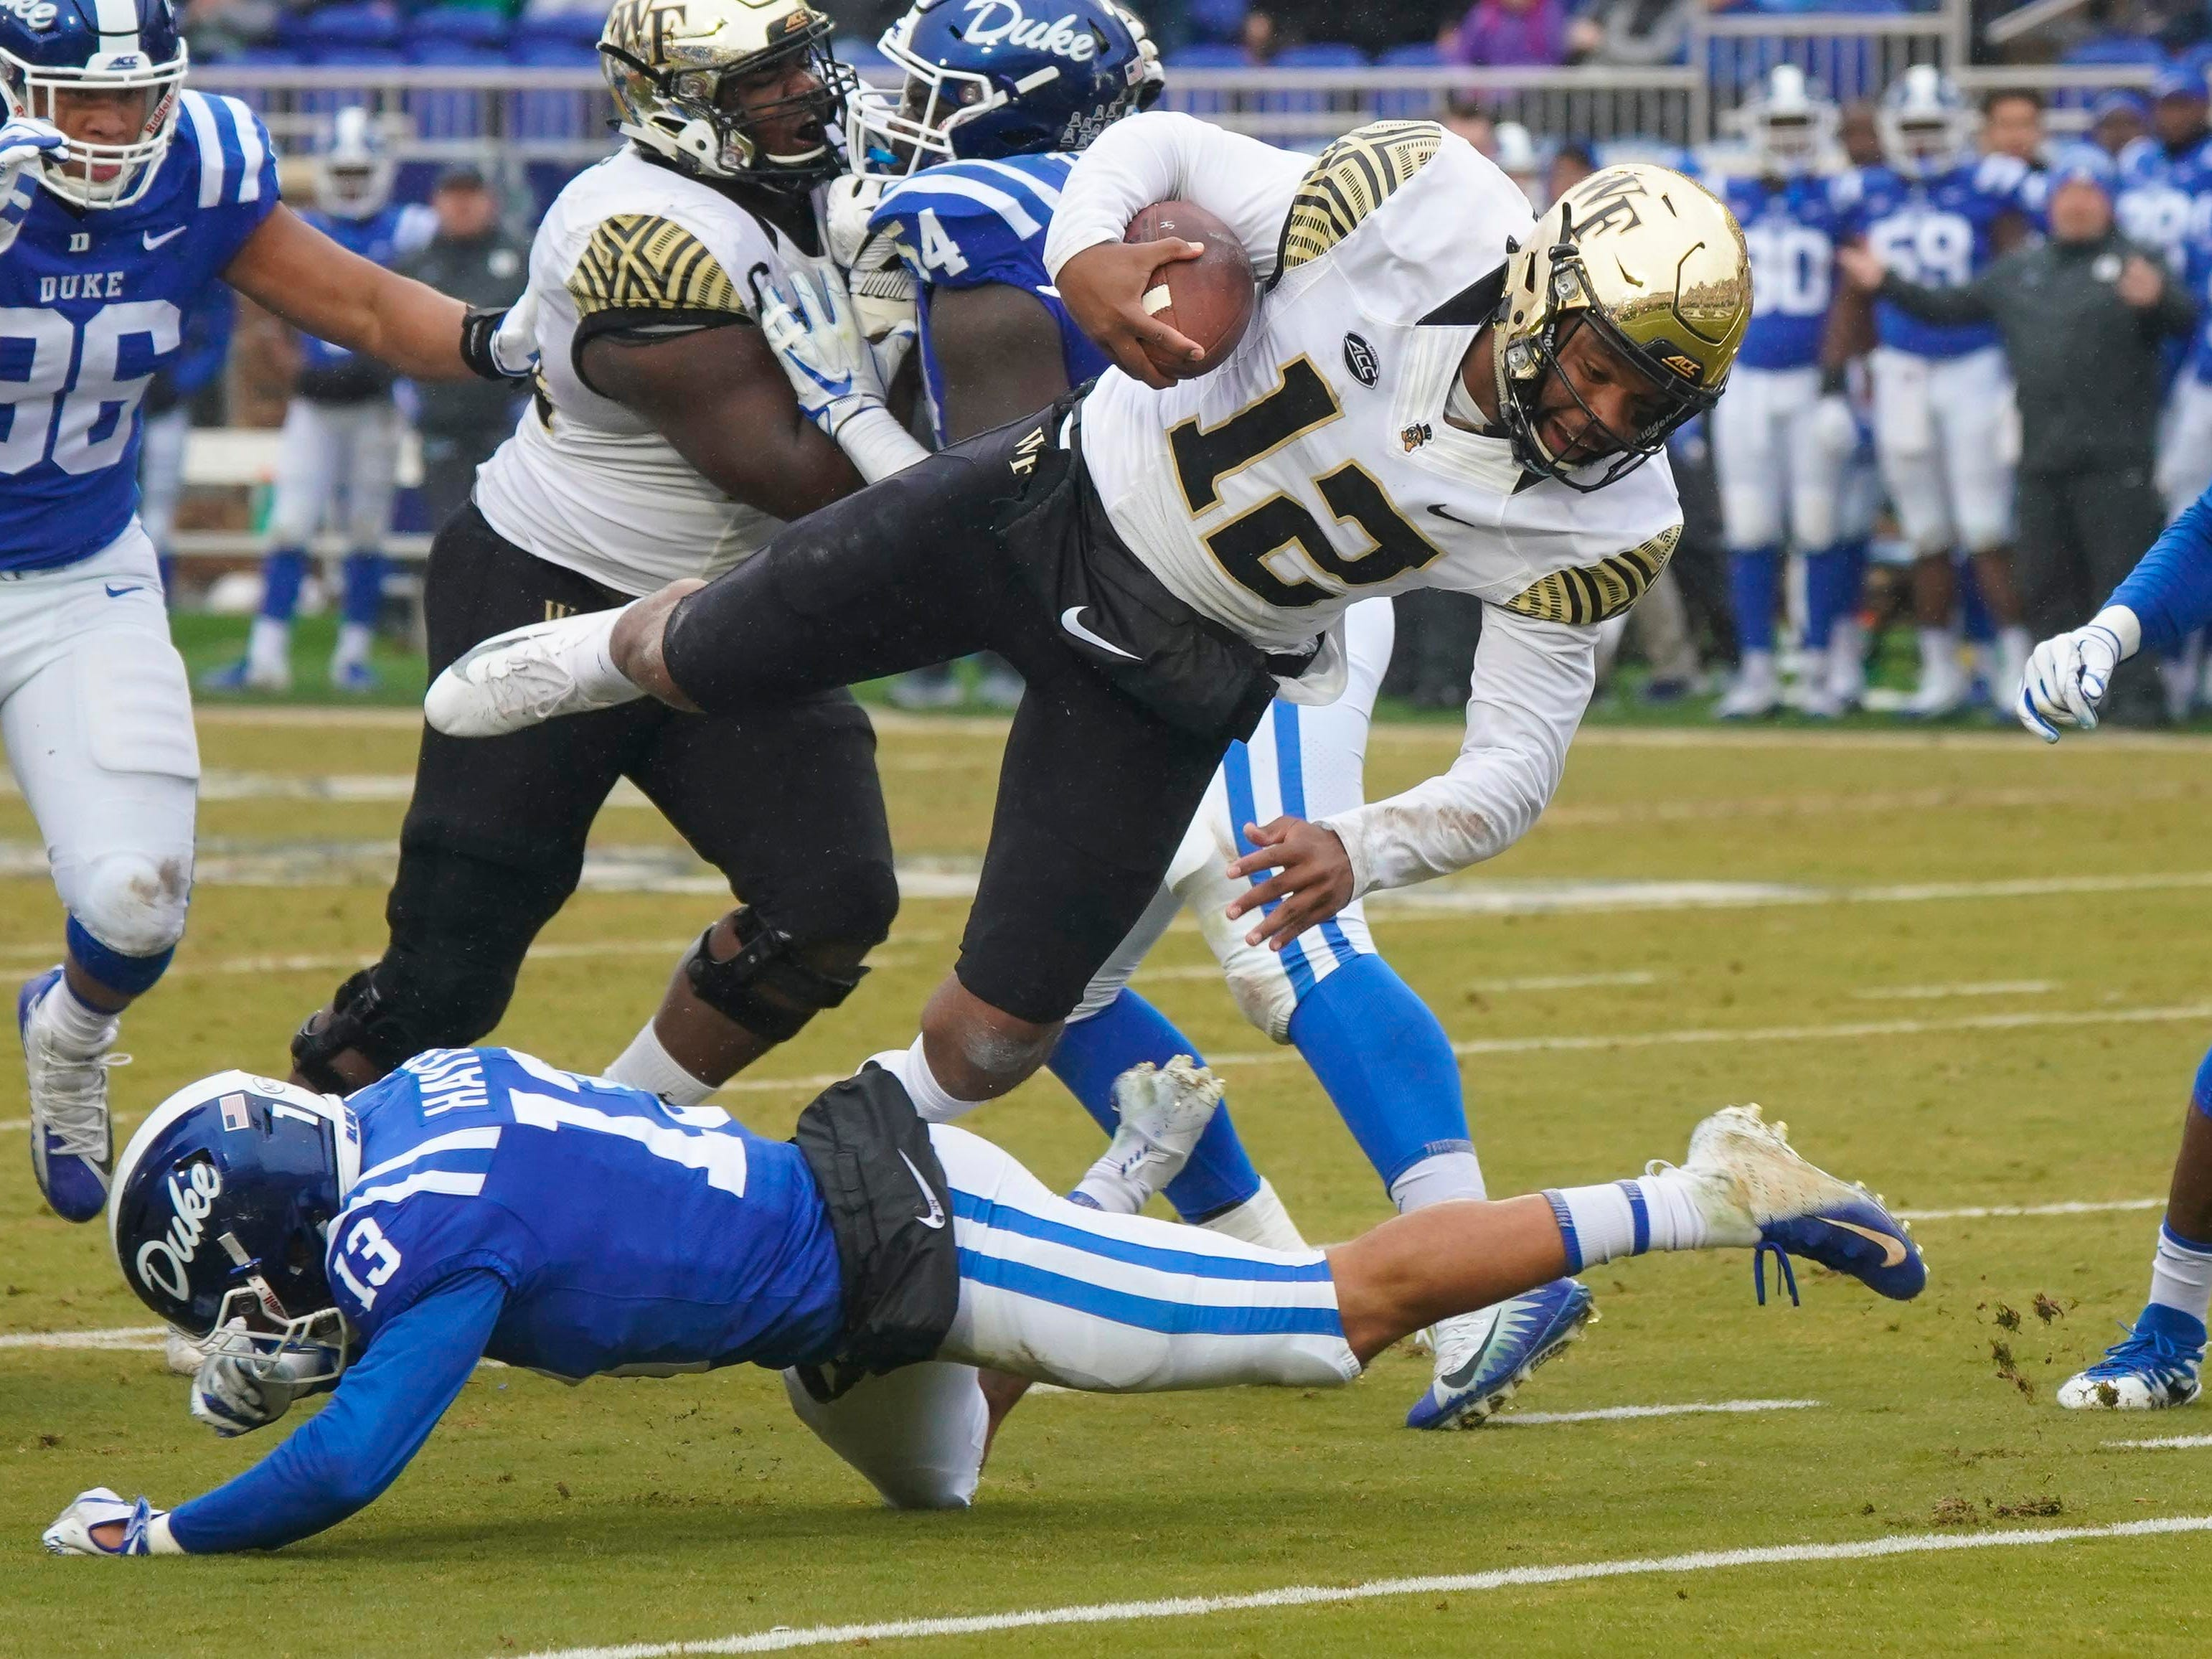 Wake Forest Demon Deacons quarterback Jamie Newman (12) is stopped on his run by Duke Blue Devils safety Jordan Hayes (13) during the first half at Wallace Wade Stadium.